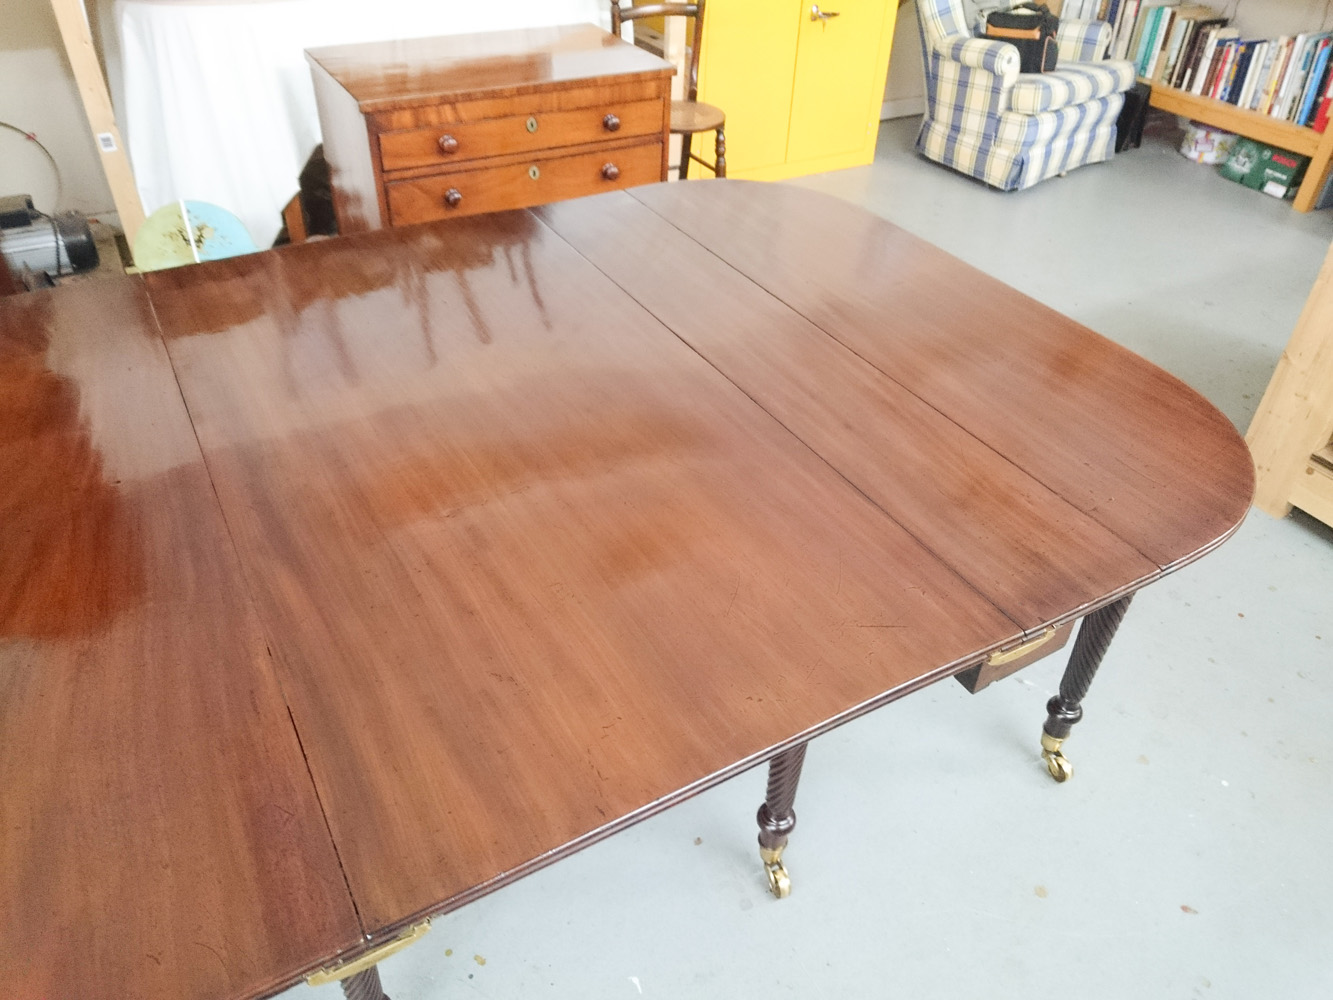 Dining table with burn damage removed